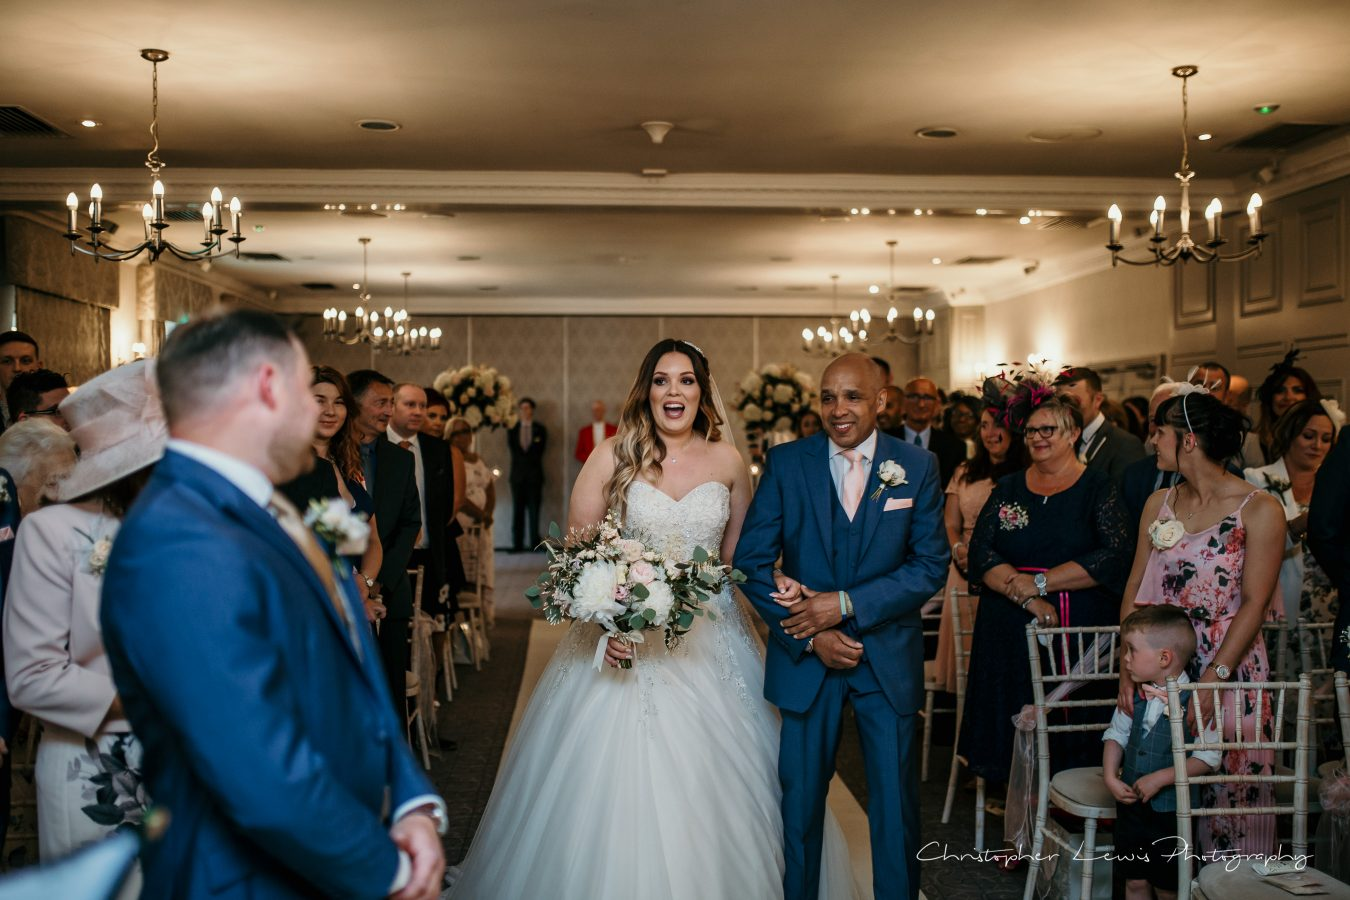 Mottram-Hall-Wedding-Christopher-Lewis-Photography- 67